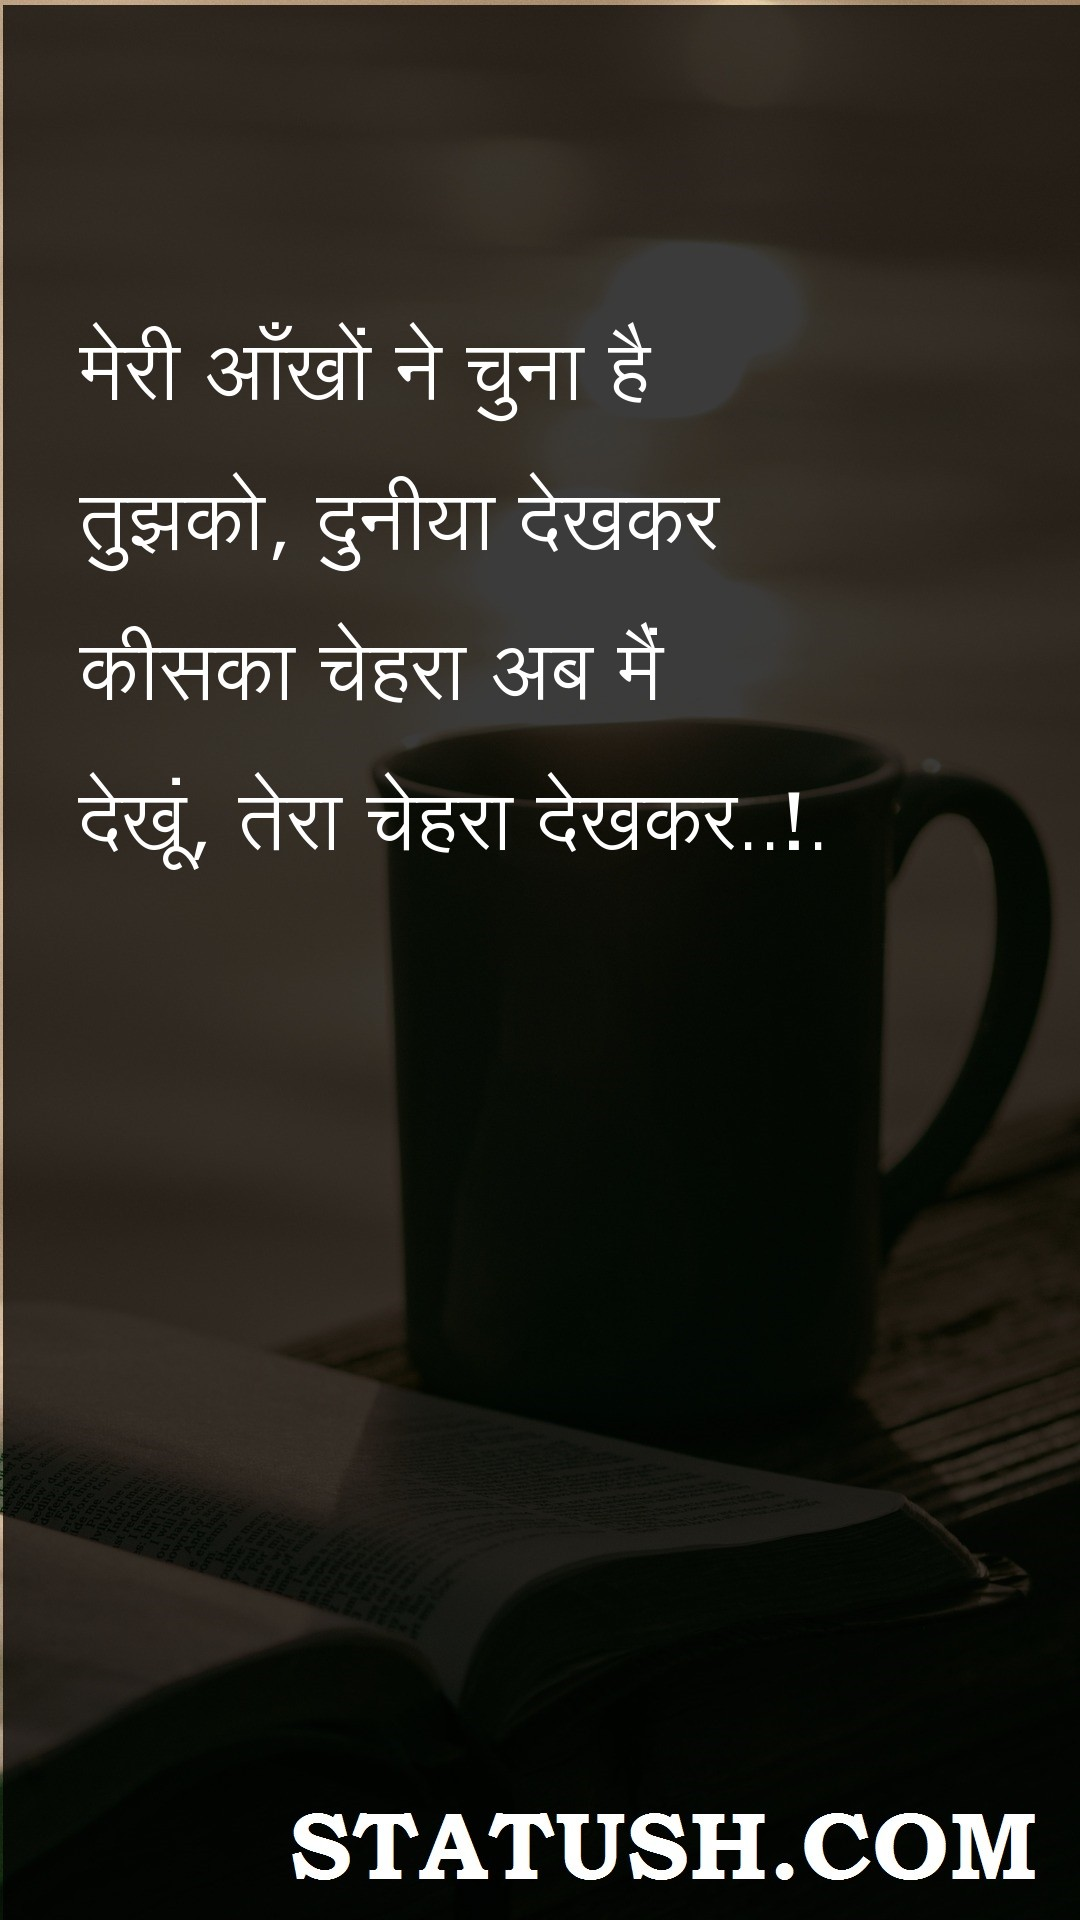 Eye Quotes At Statush Com The inspirational hindi quotes, thoughts, slogans and suvichar in hindi used on this site have primarily been taken from brainy quote. latest quotes about love friendship life girls hope and more at statush com